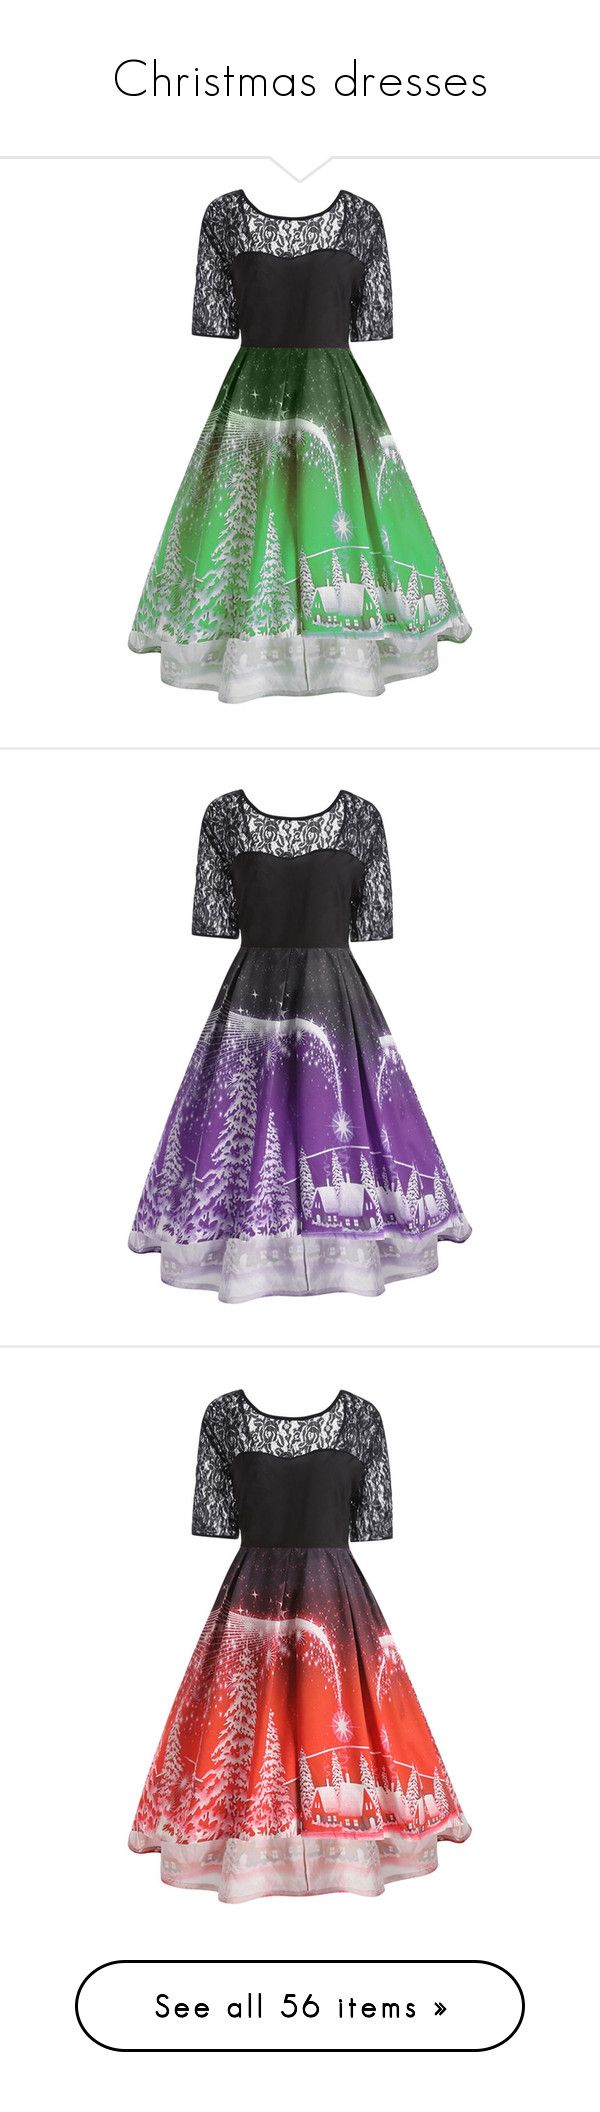 """""""Christmas dresses"""" by paculi ❤ liked on Polyvore featuring dresses, women plus size dresses, green cocktail dress, cocktail party dress, party dresses, plus size dresses, plus size purple dress, plus size party dresses, vintage cocktail dresses and christmas party dresses"""